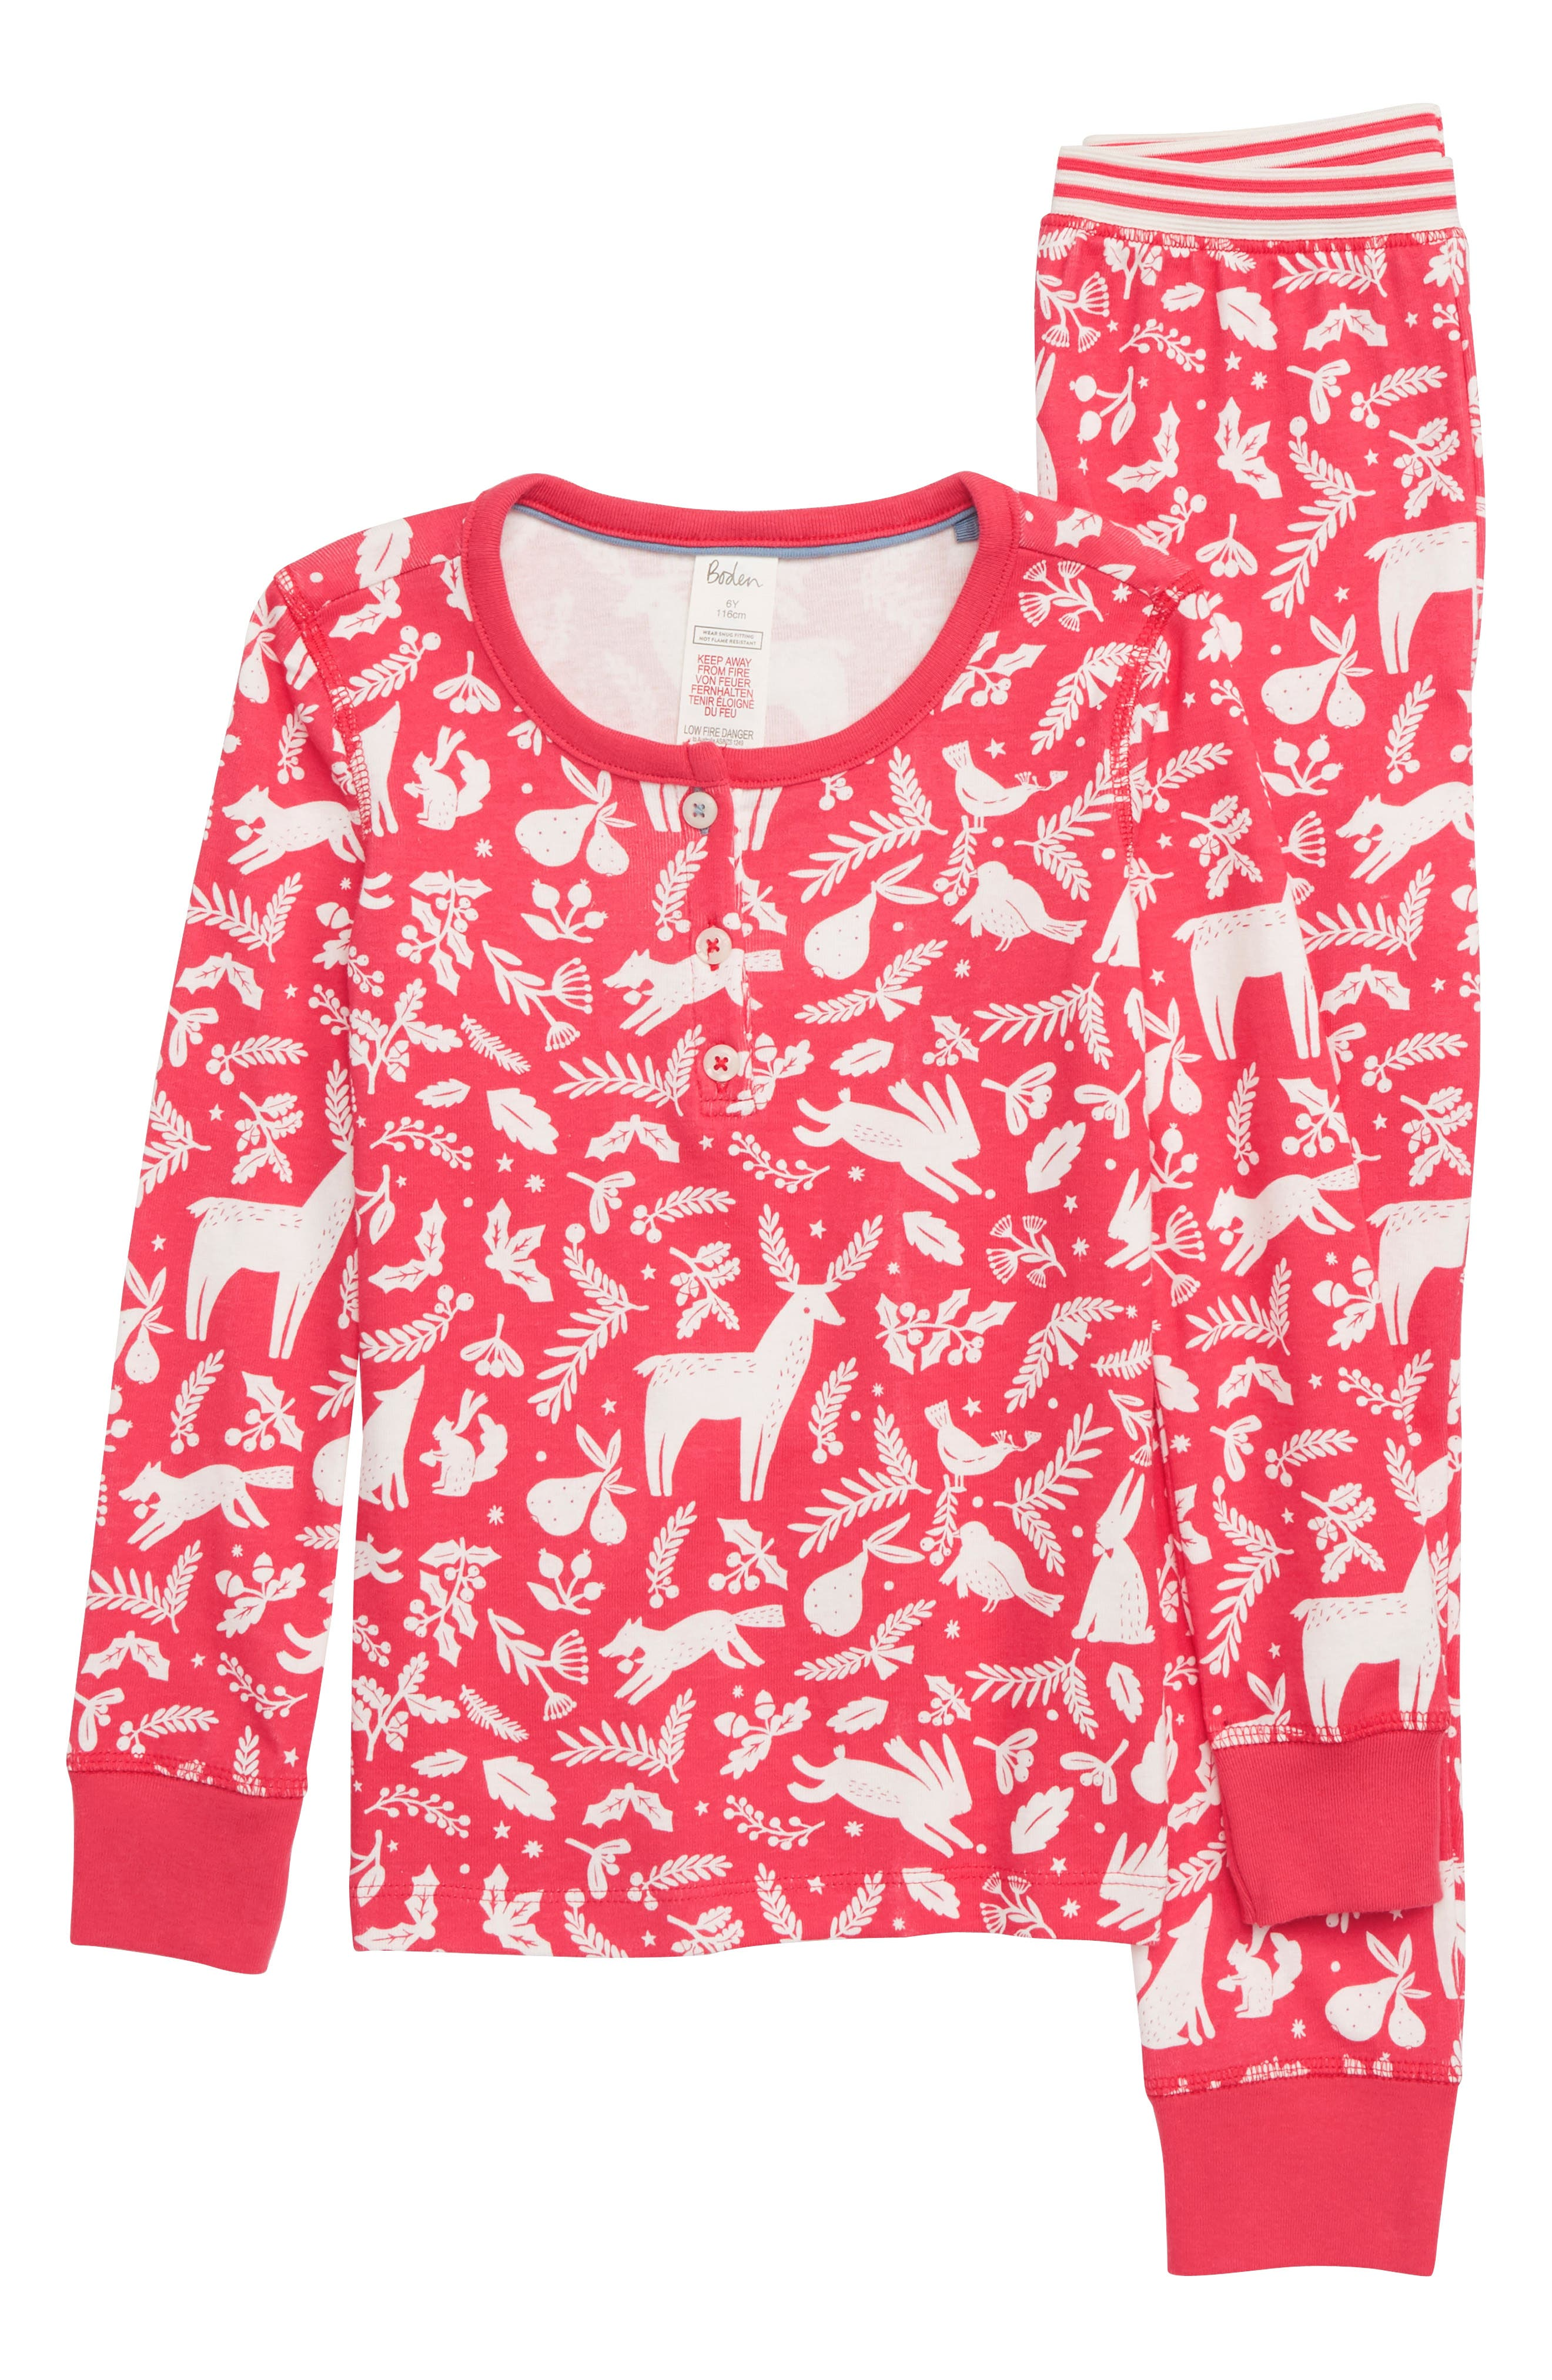 MINI BODEN,                             Fitted Two-Piece Pajamas,                             Main thumbnail 1, color,                             654